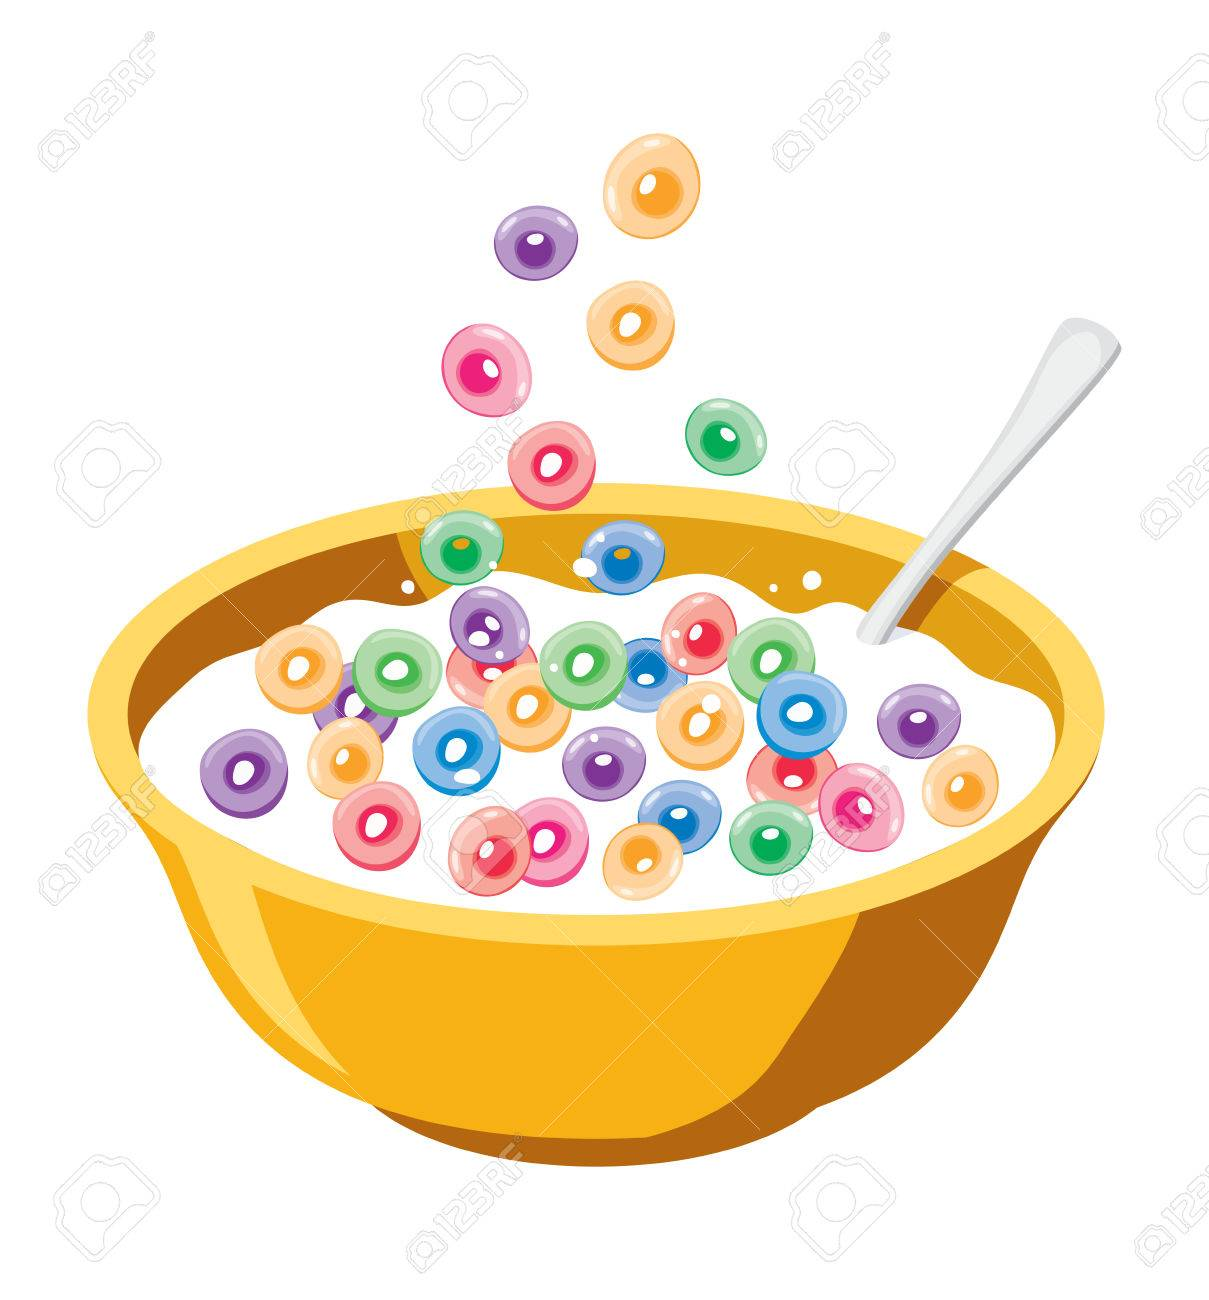 vector yellow bowl with cereals in milk isolated on white background.